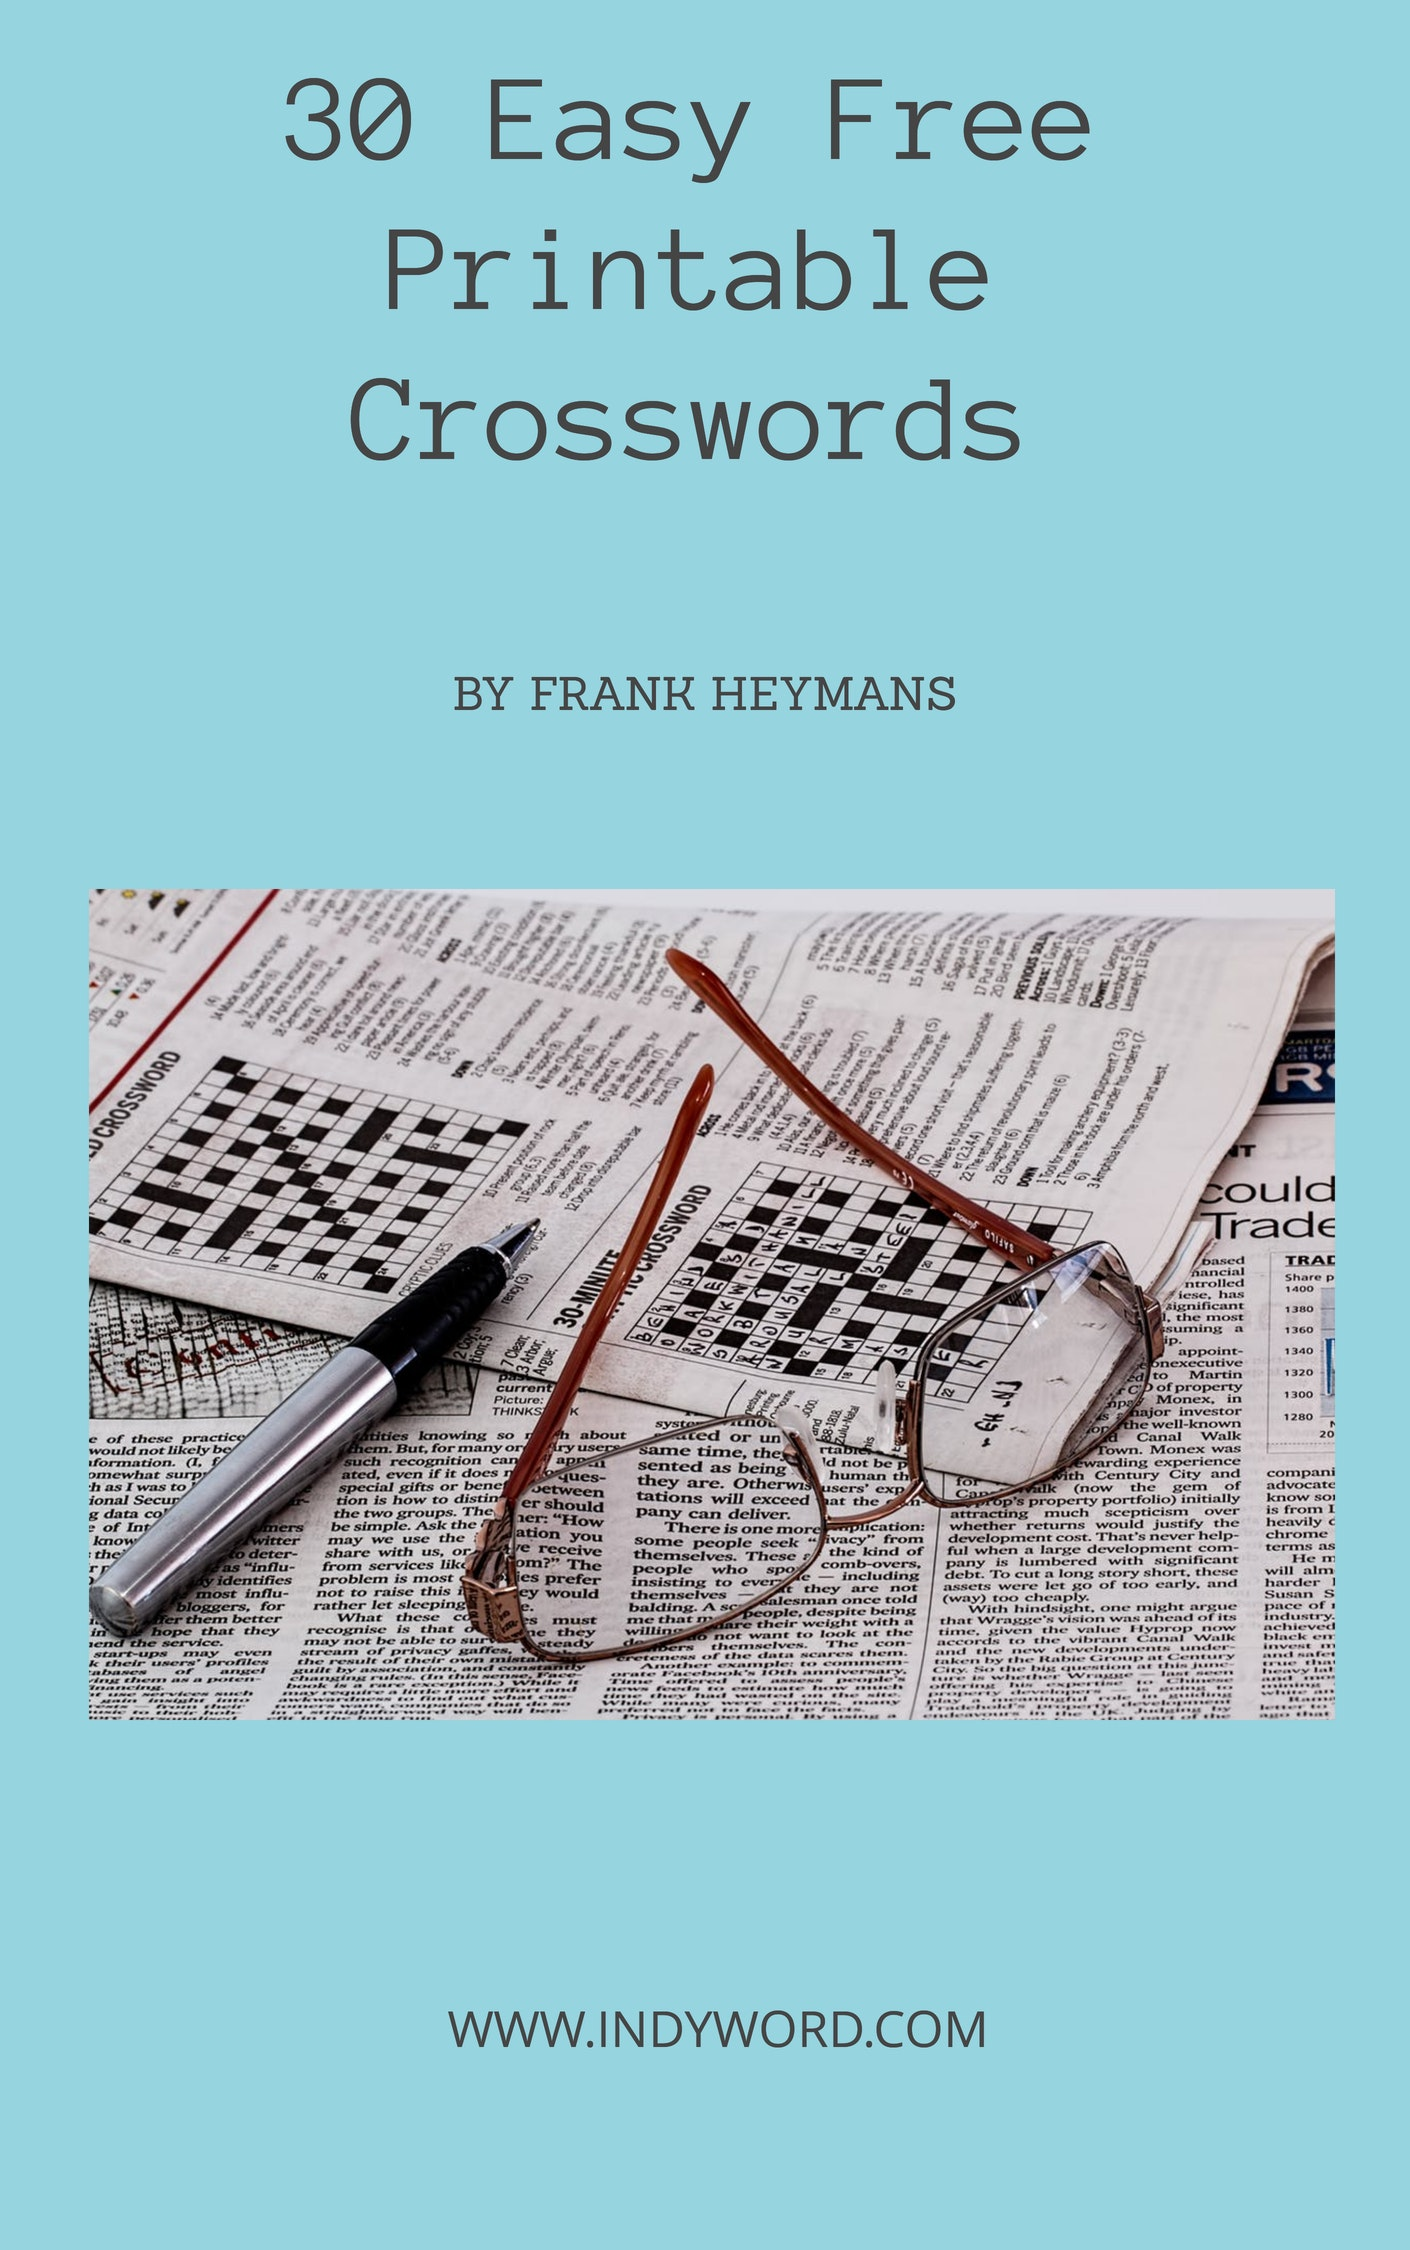 30 Easy Free Printable Crosswords.  The e-book